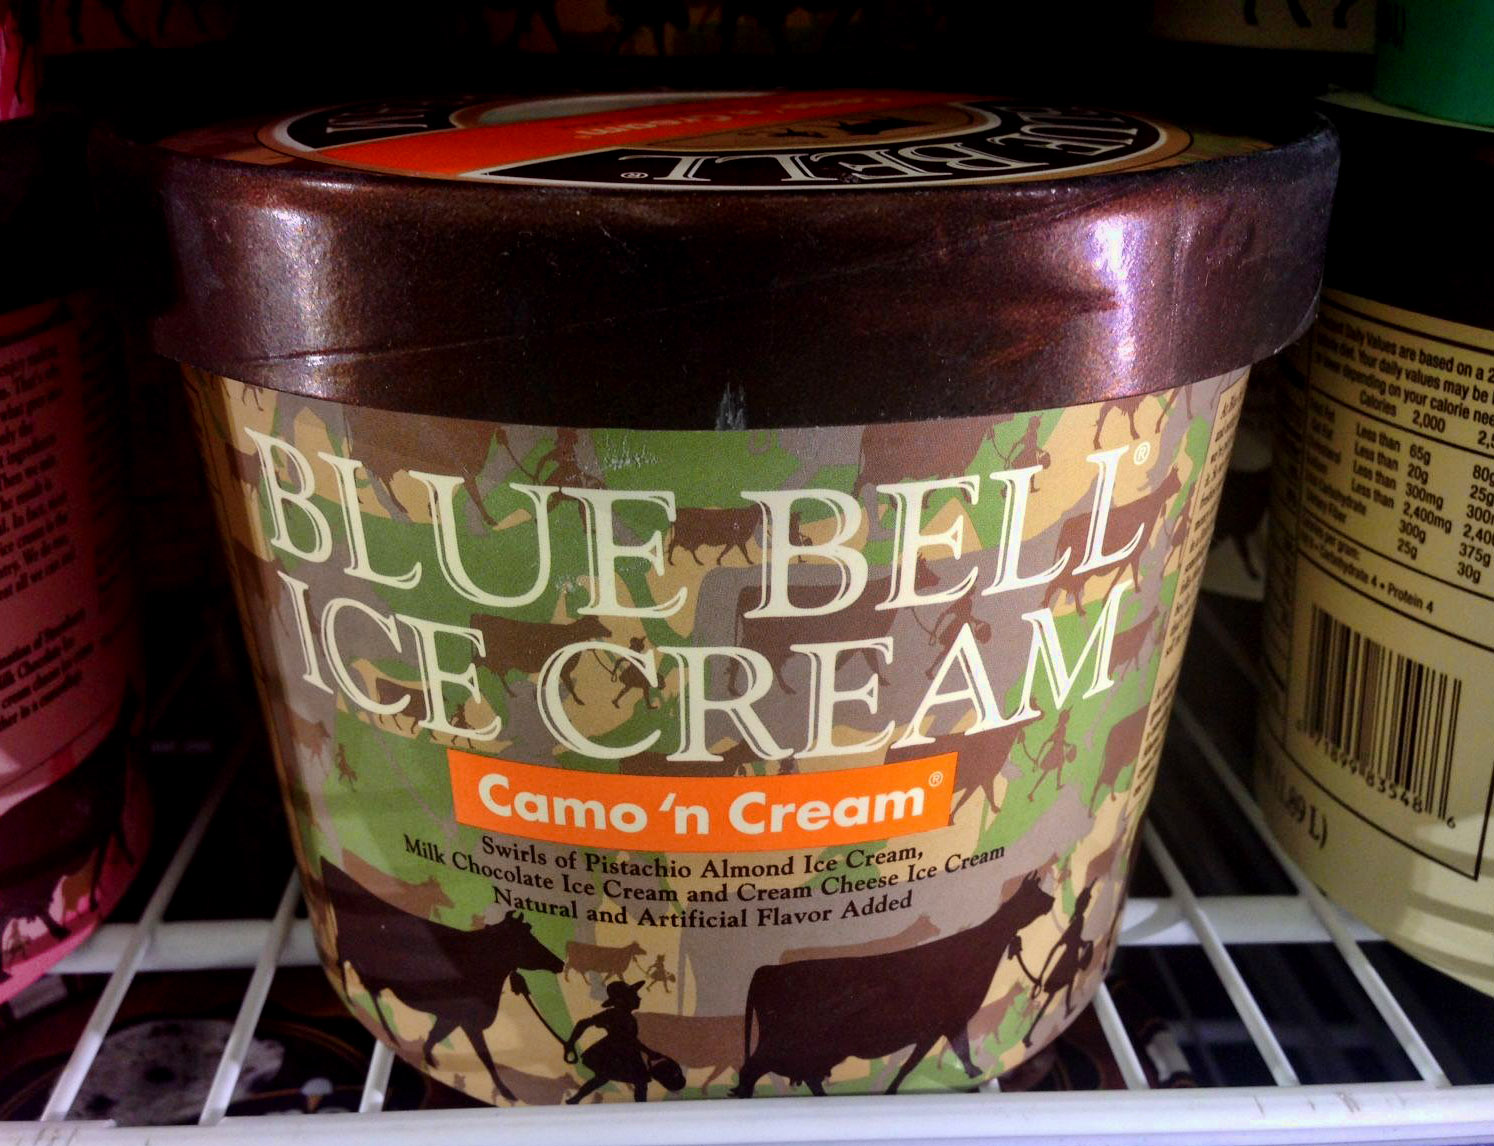 You know you're in Texas when even the ice cream wears camo!